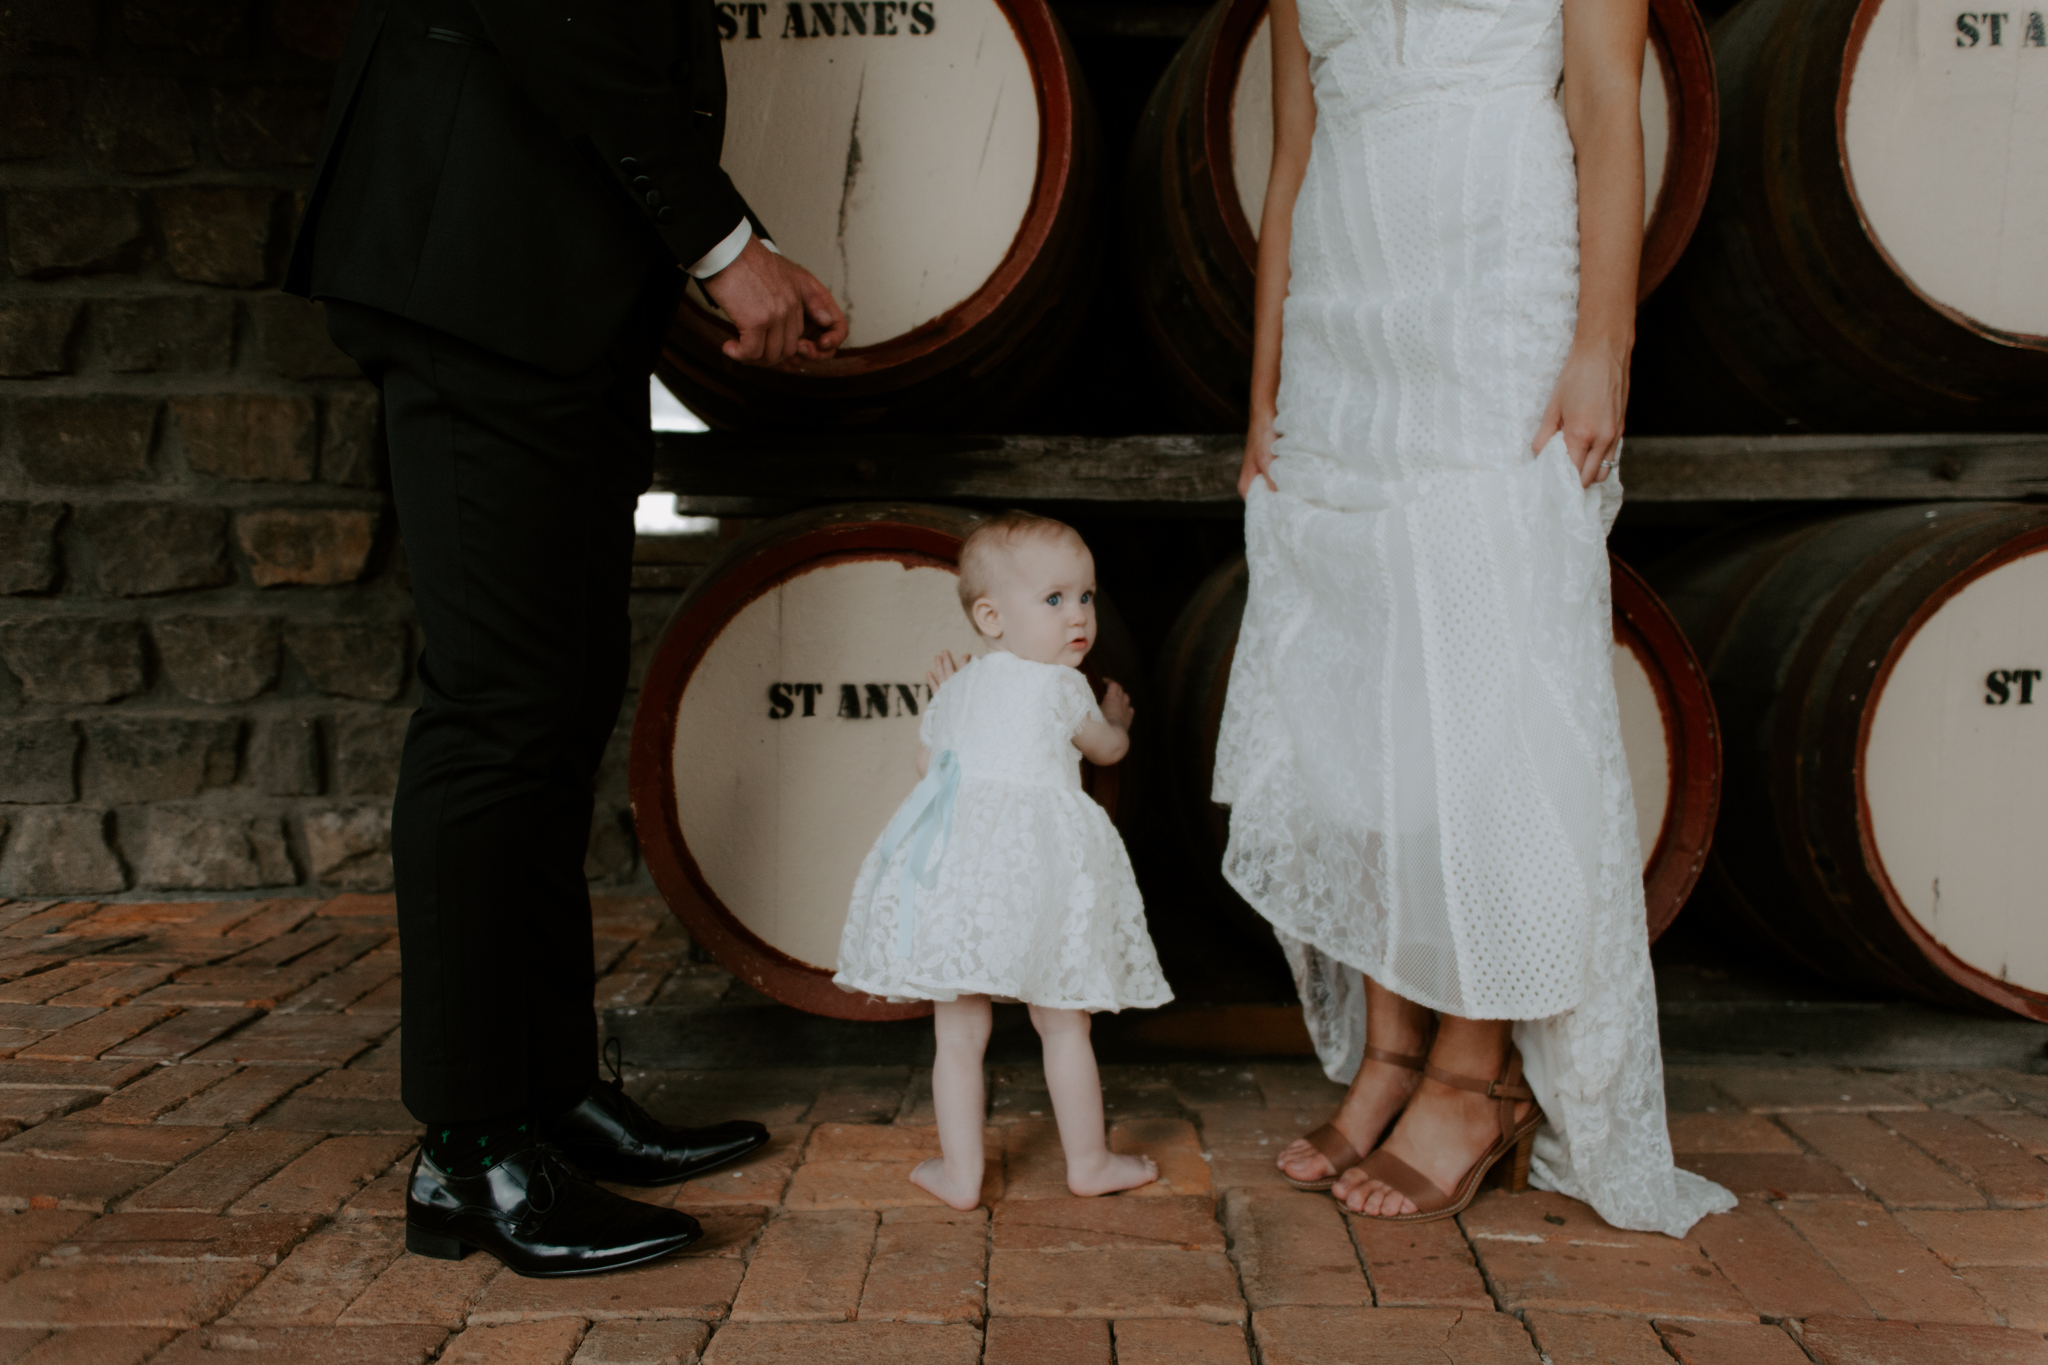 St Anne's Vineyards Wedding-EmotionsandMath-097.jpg